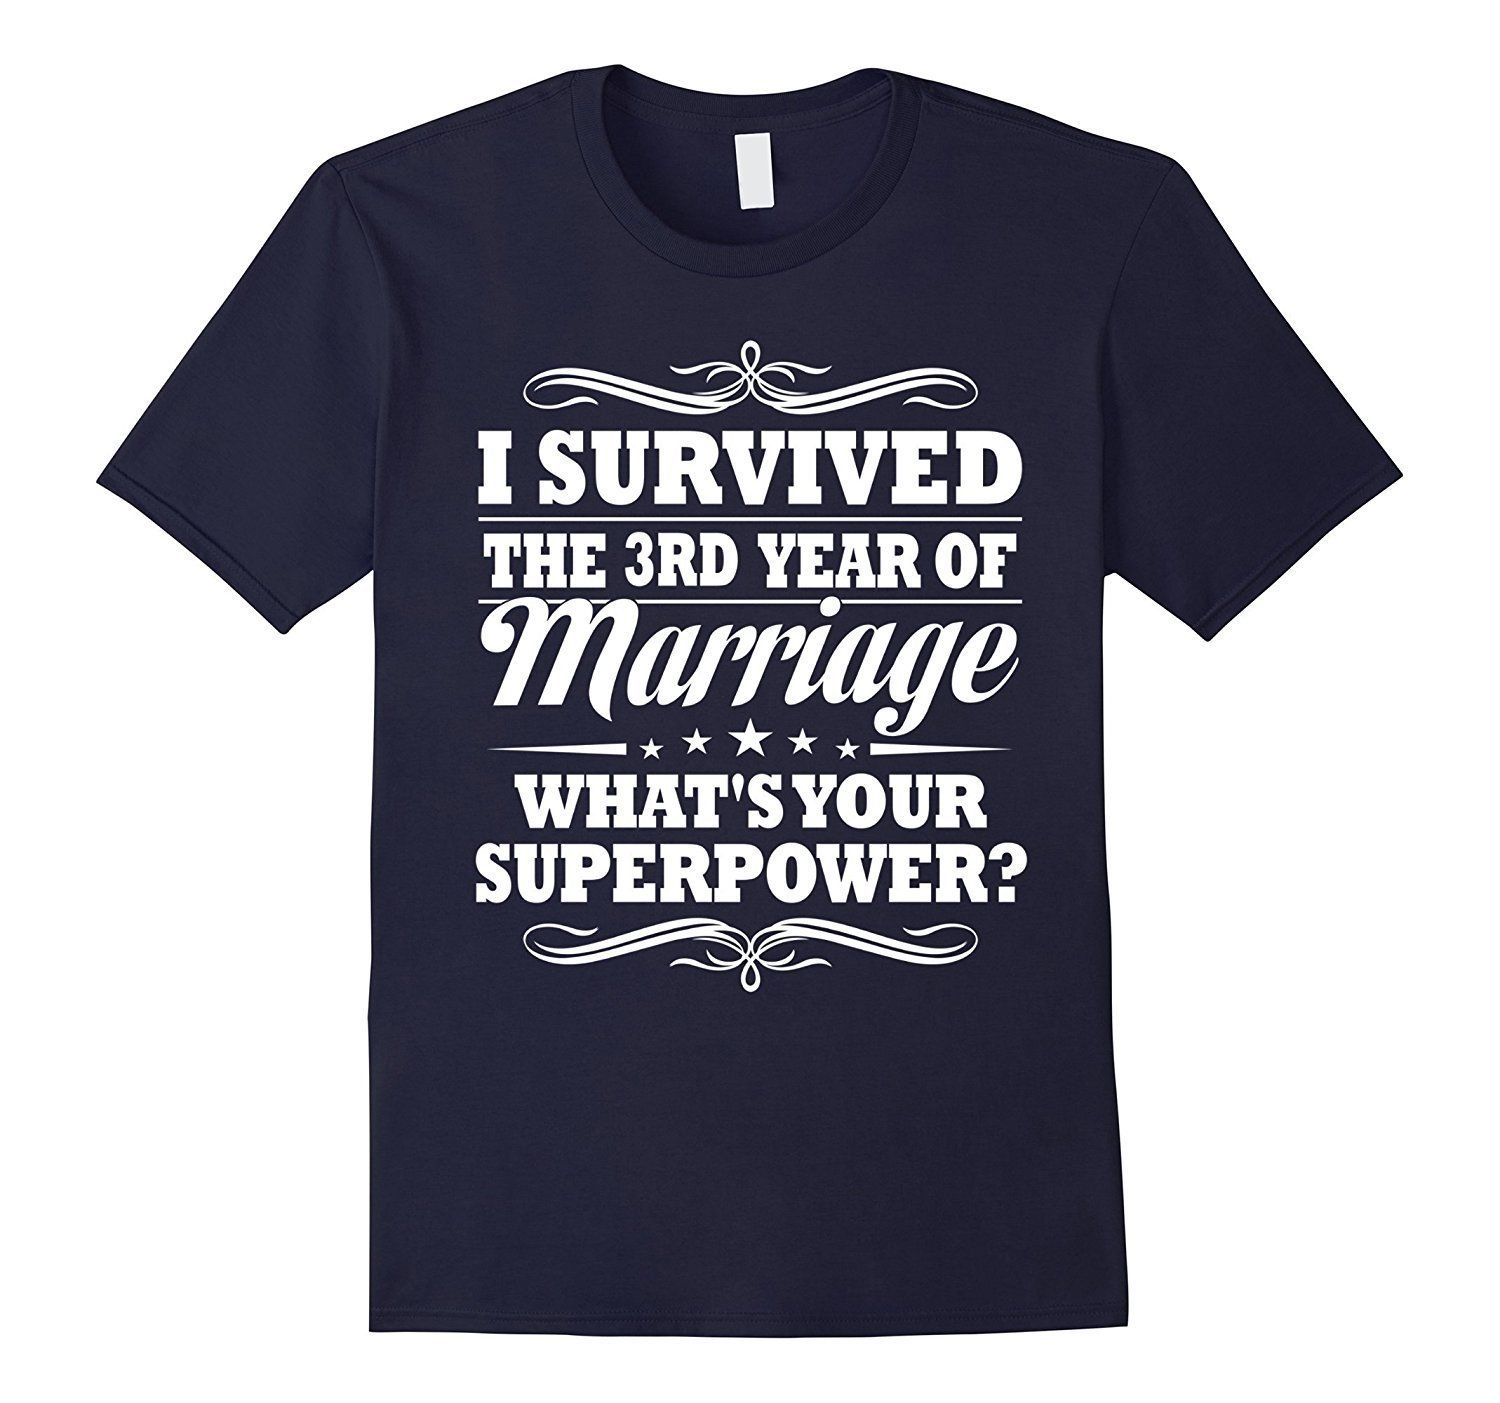 Rd wedding anniversary gift ideas for her him i survived